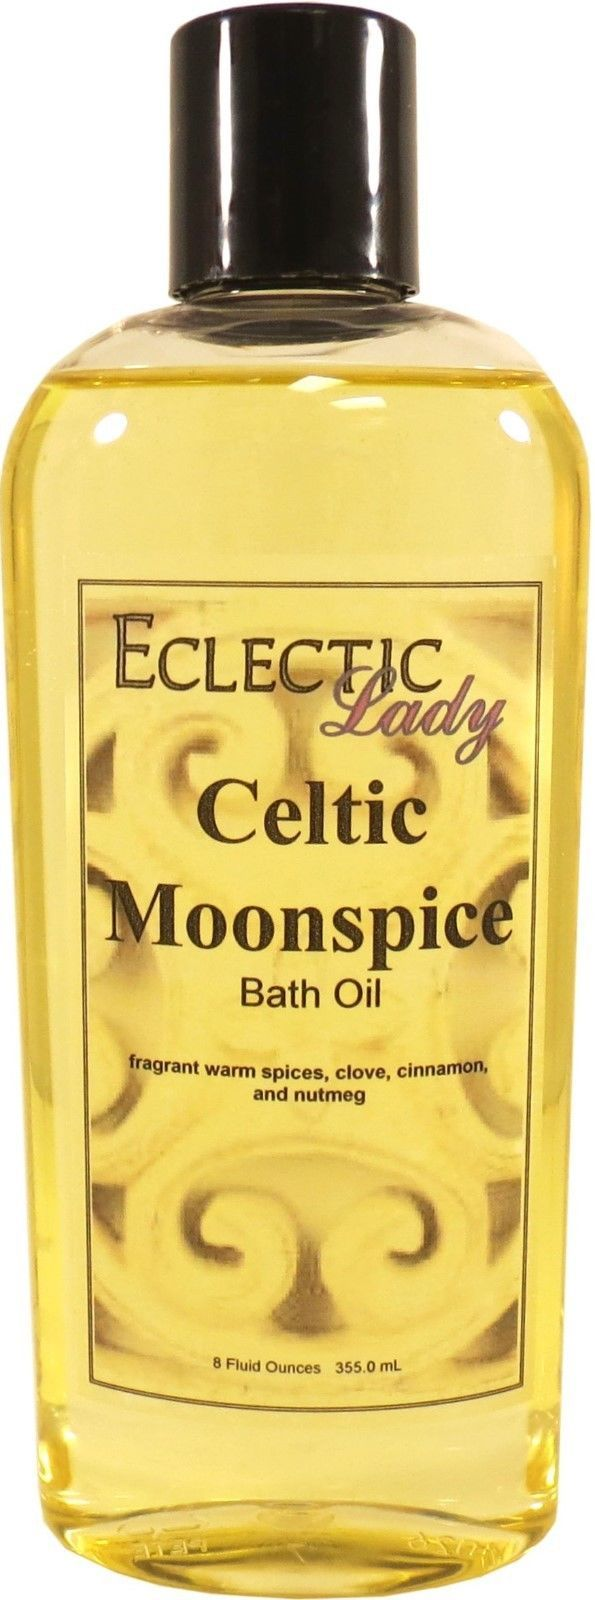 Celtic Moonspice Bath Oil